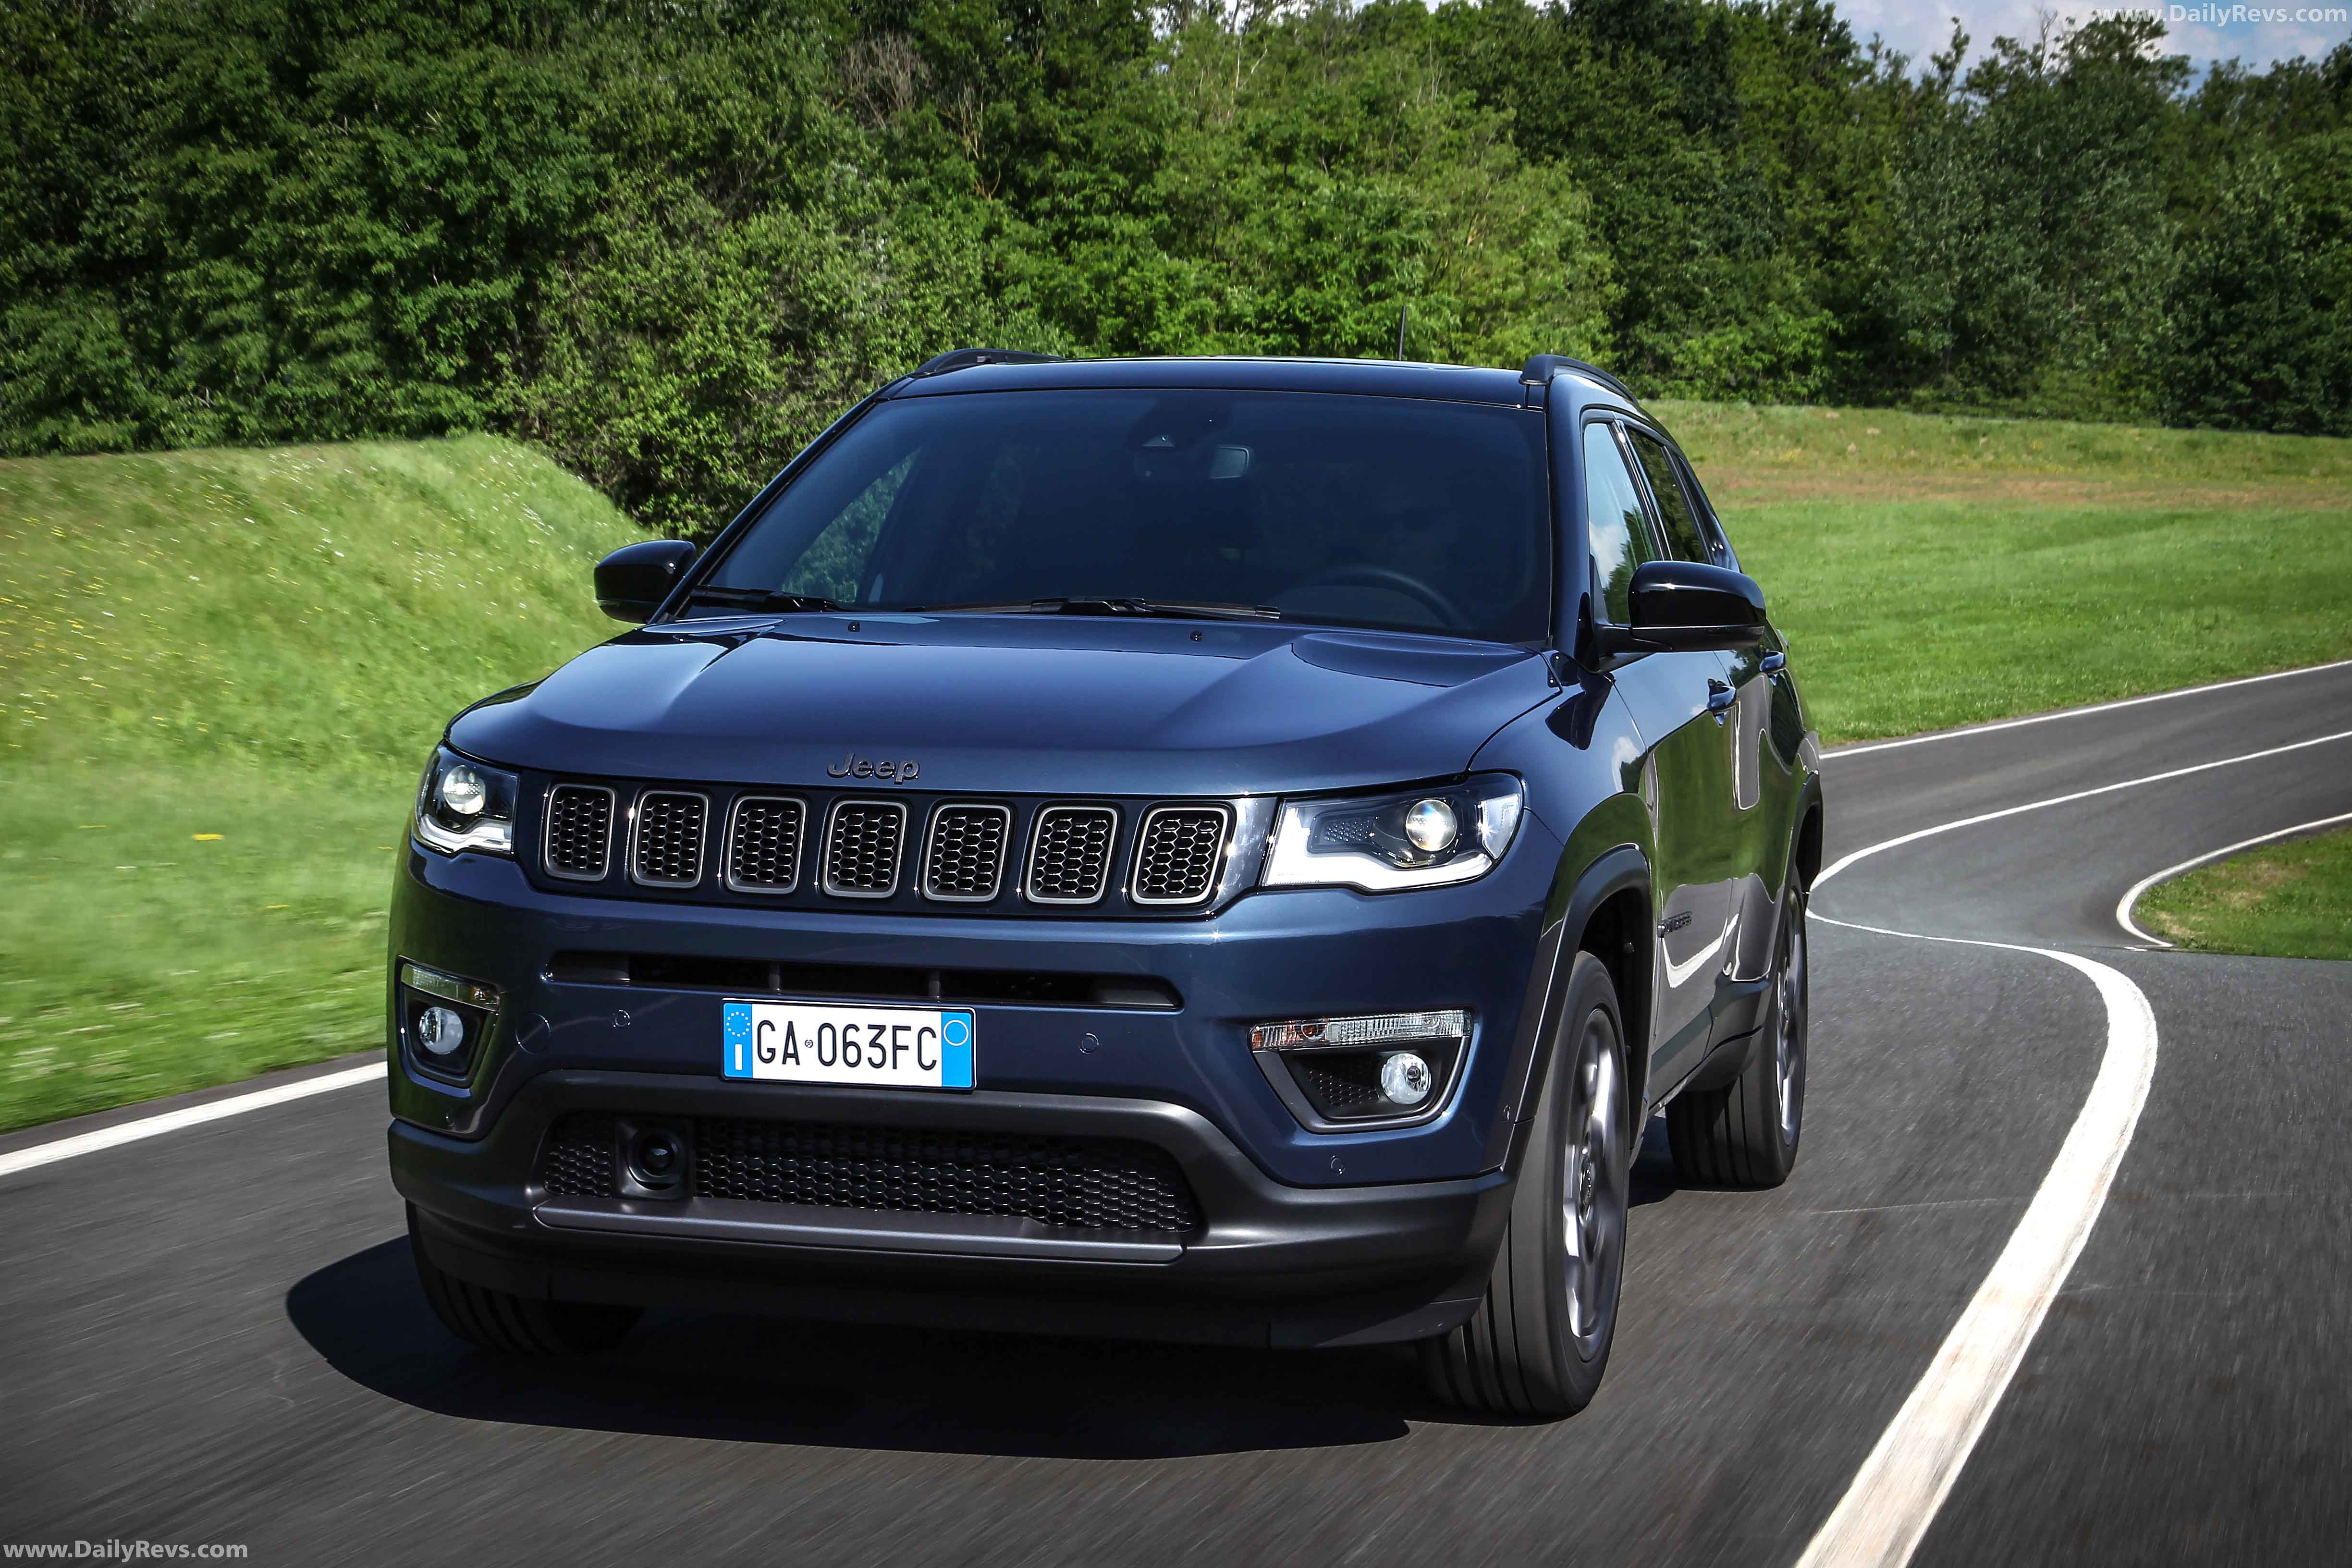 2020 jeep compass - dailyrevs